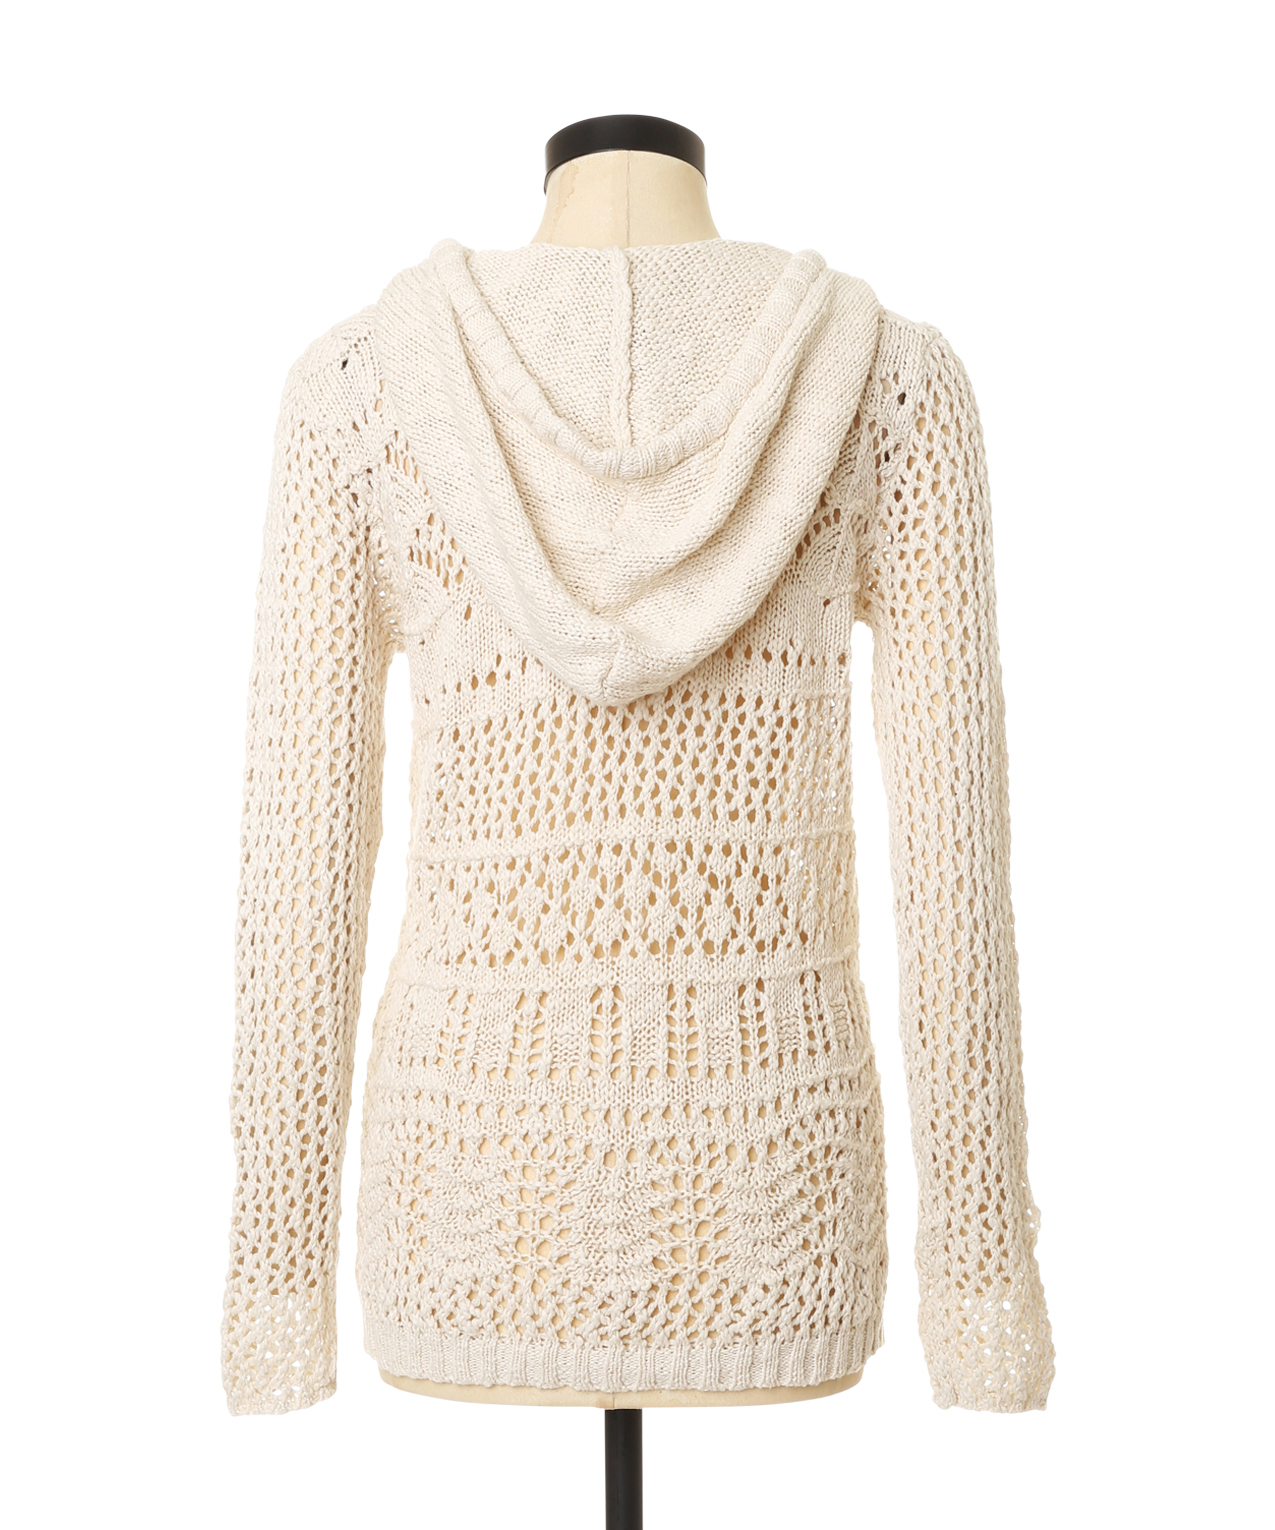 crochet hooded sweater | triple 5 soul